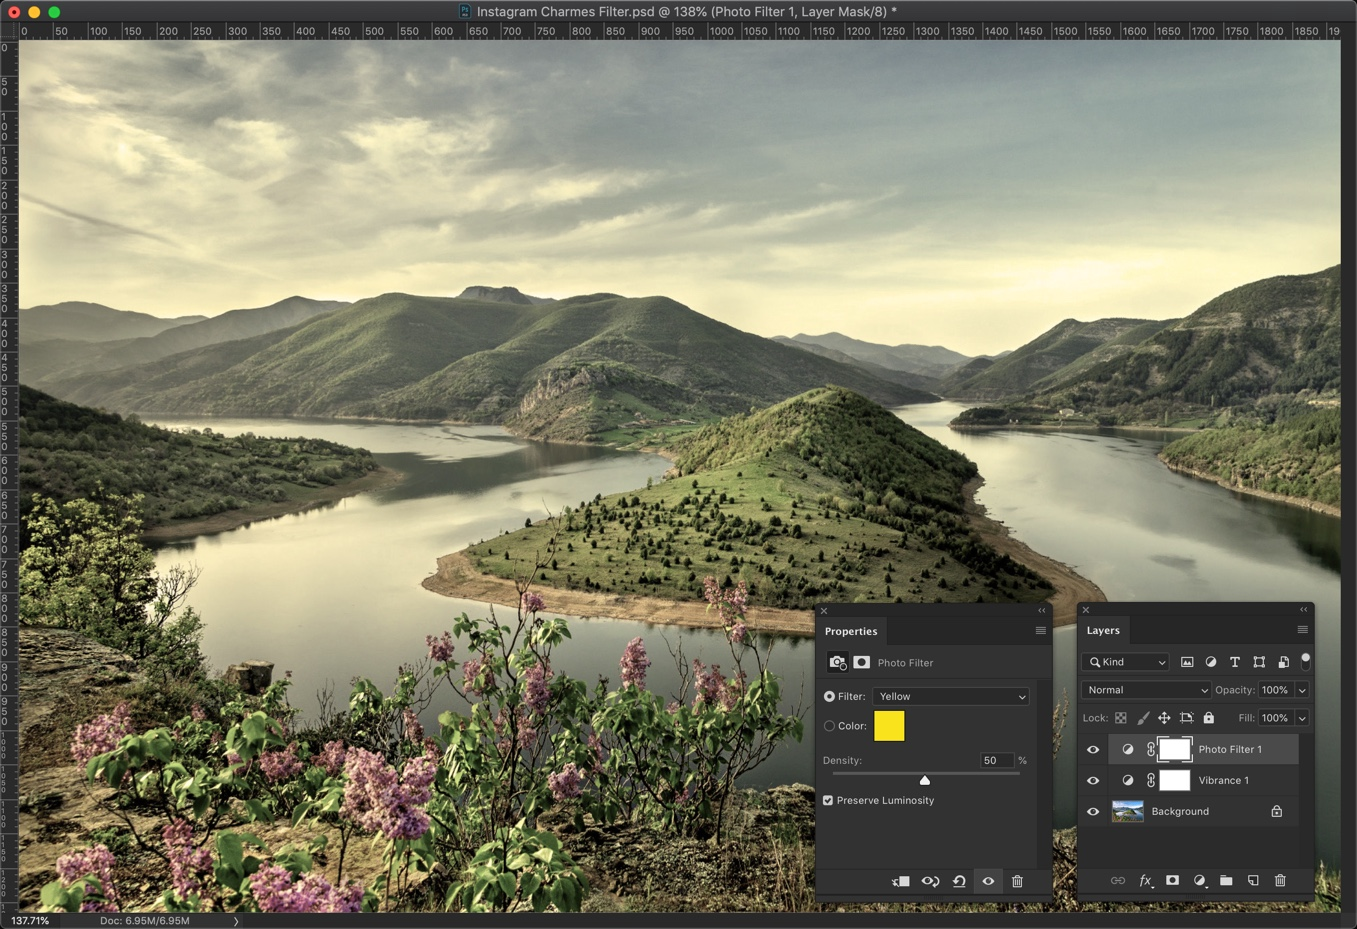 3-1 - Create Instagram Charmes Filter in Photoshop [Action Included]